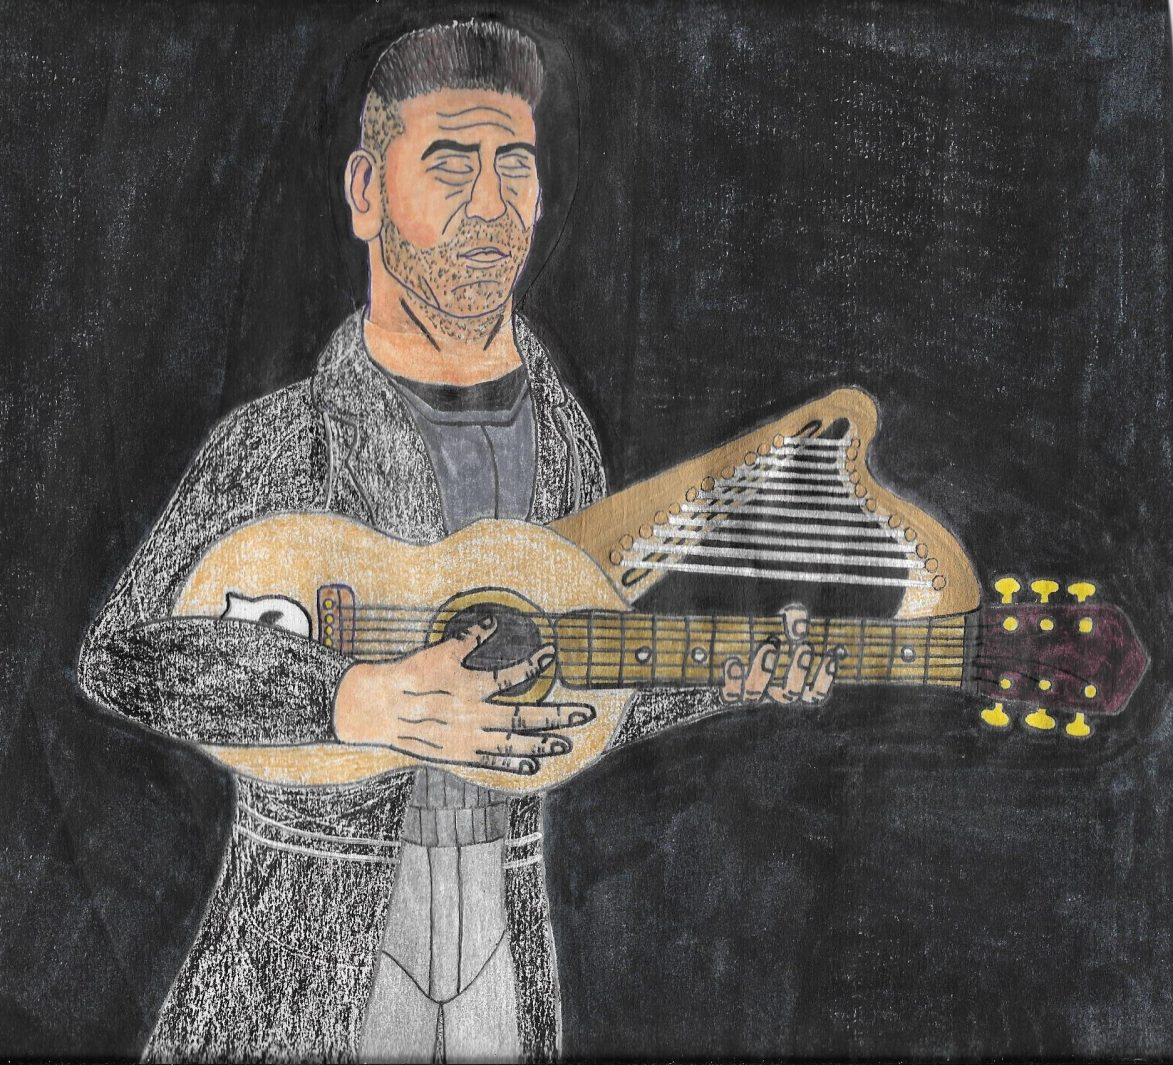 The Old fashioned version of Jon Bernthal's Punisher and his harp guitar.